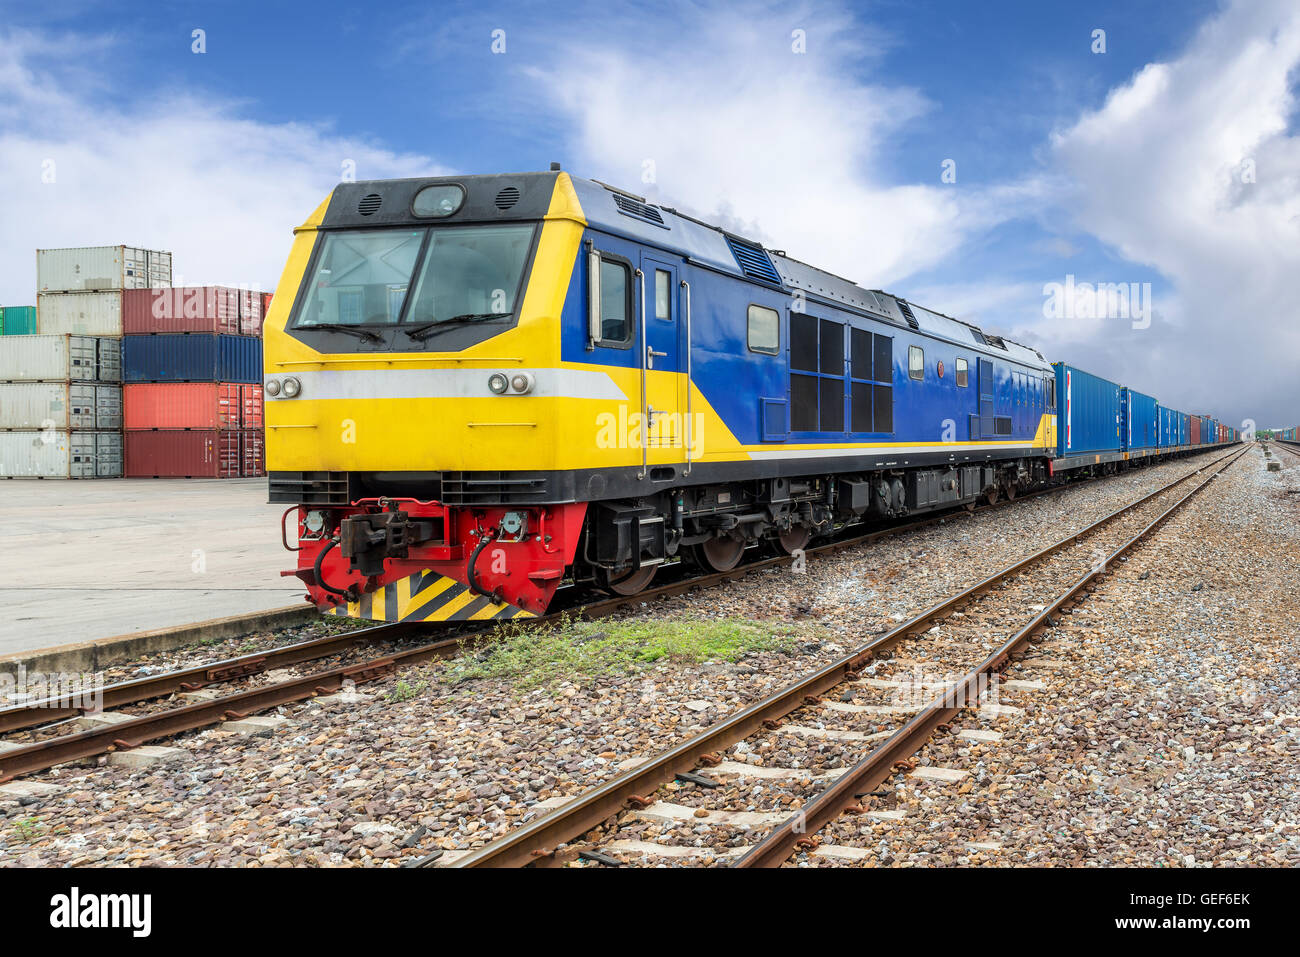 Import, Export, Logistics concept - Cargo train platform with freight train container at depot use for Import, Export, - Stock Image